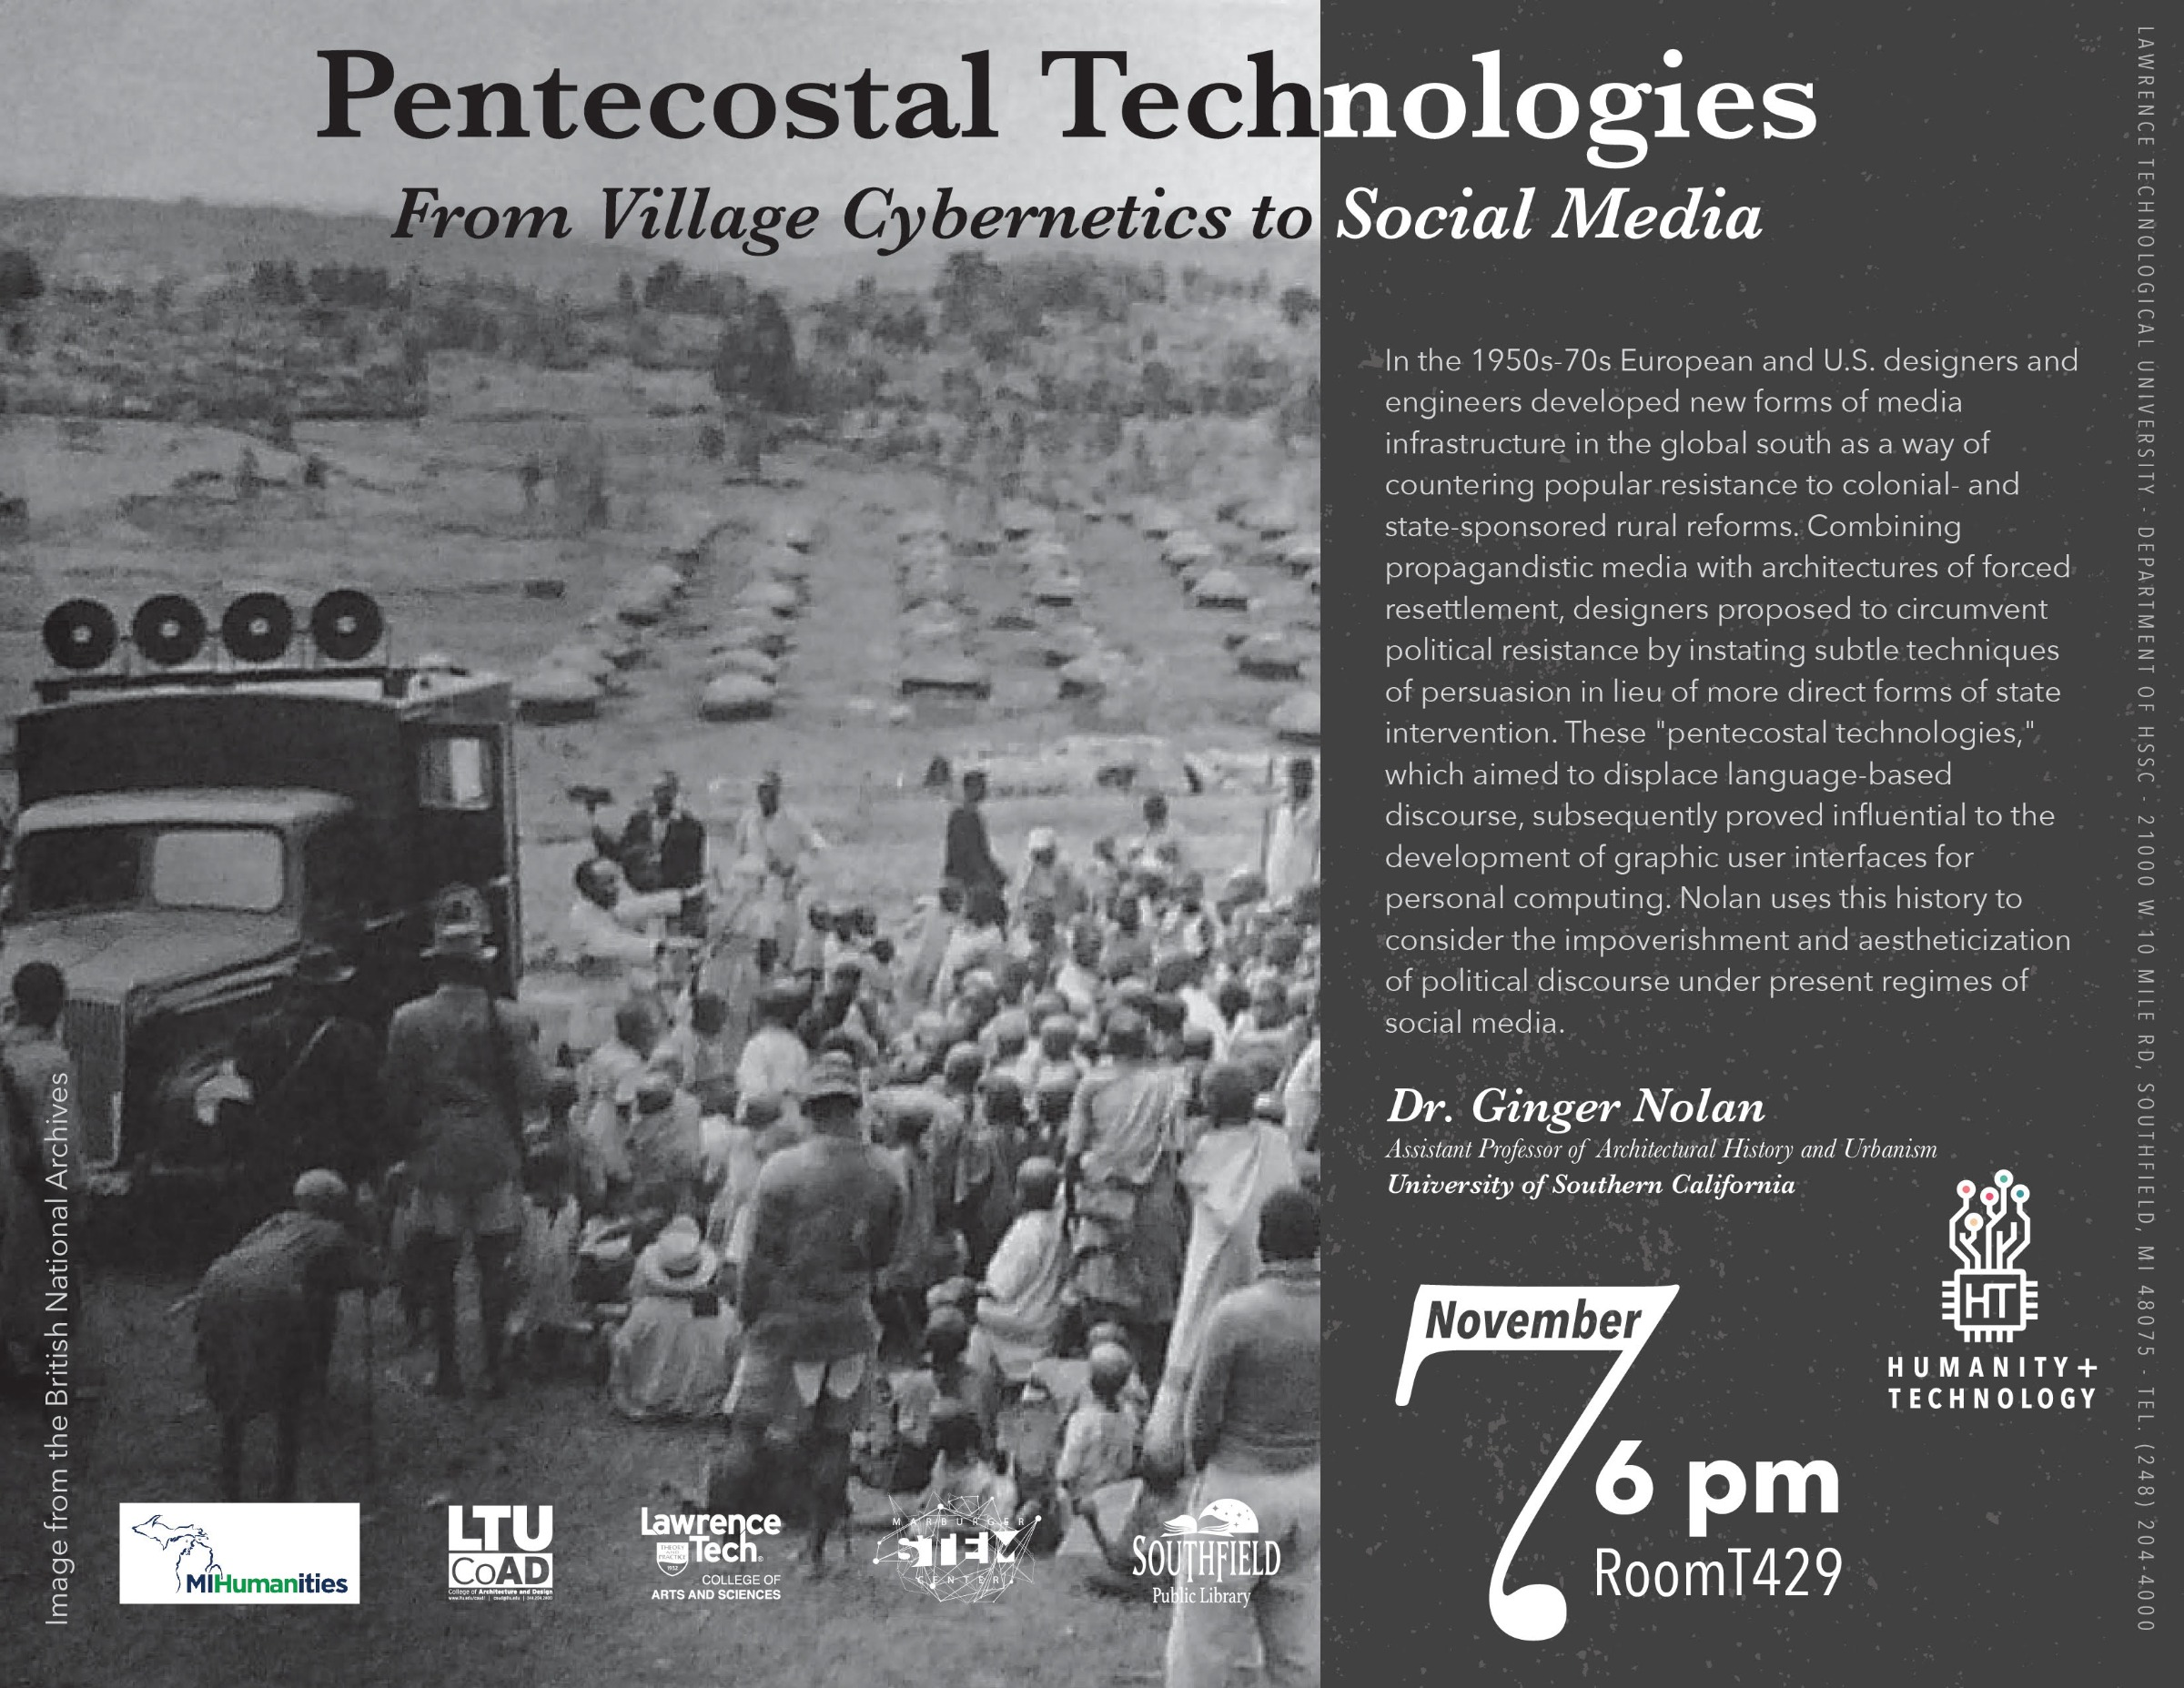 Pentecostal Technologies From Village Cybernetics to Social Media